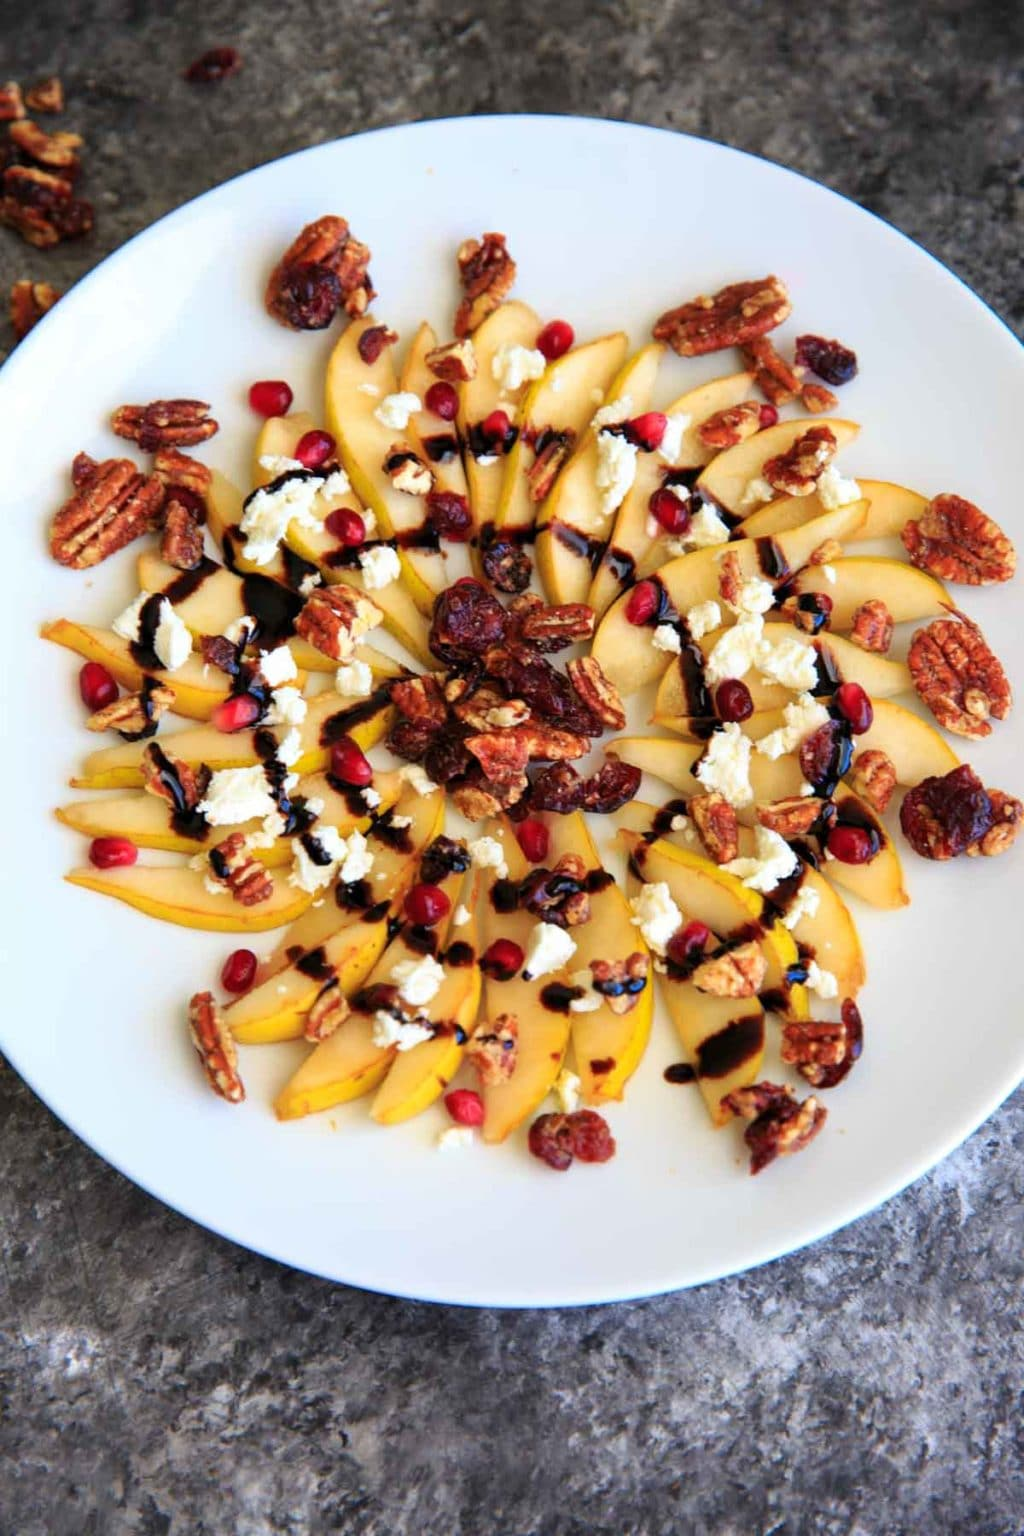 Sweet and savory pear nachos with glazes pecans, chevre cheese, pomegranate seeds and balsamic. A unique snack or dessert!